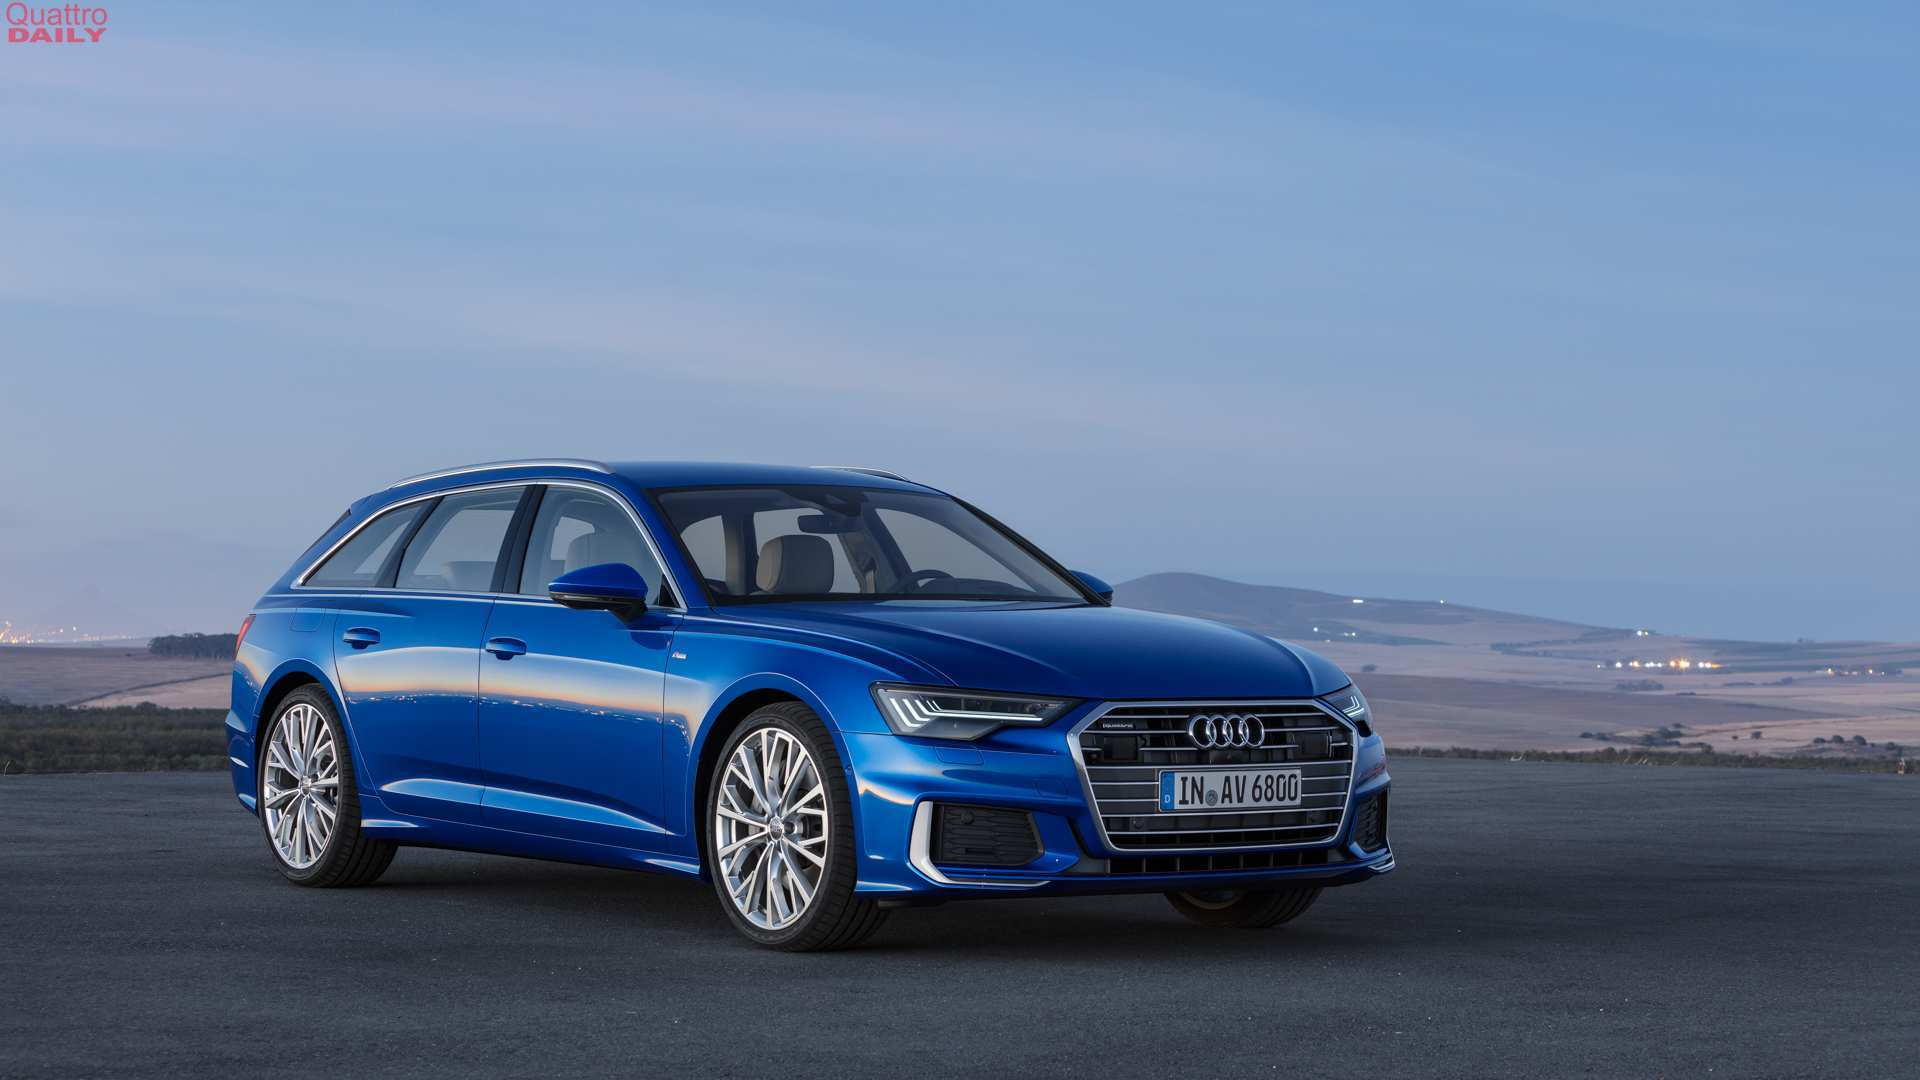 38 Gallery of 2020 Audi A6 Wagon Overview with 2020 Audi A6 Wagon